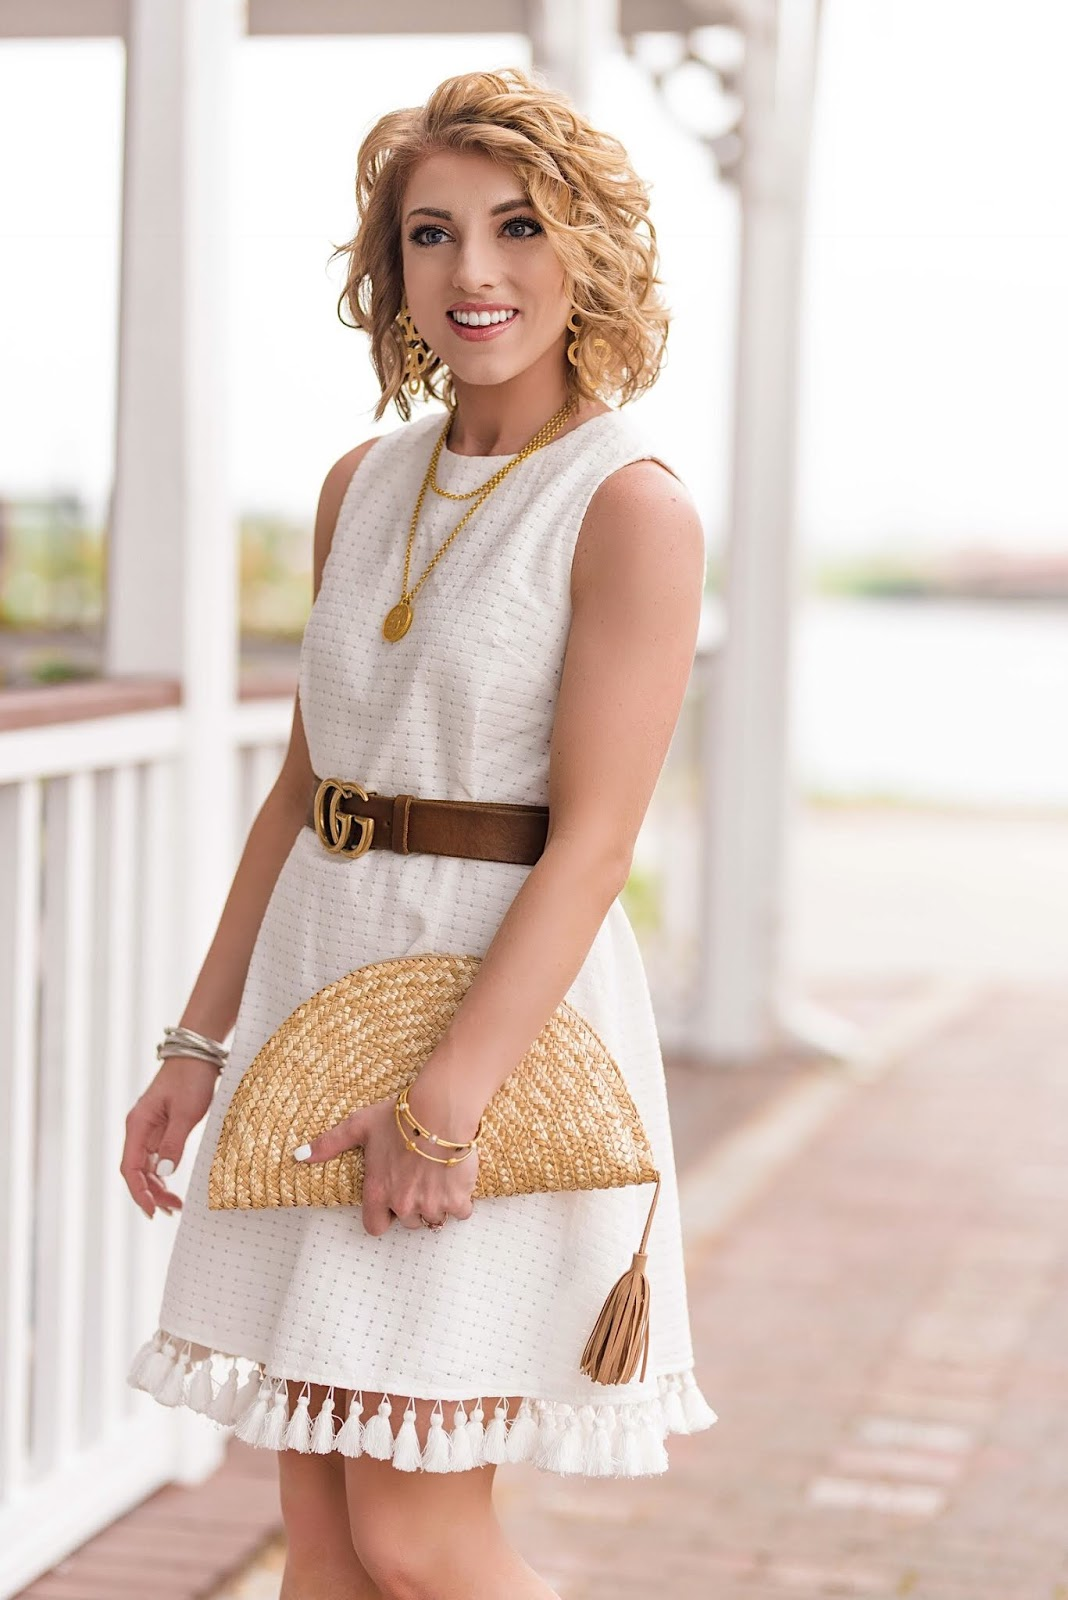 Tassel Hem White Dress + Gucci Belt - Something Delightful Blog